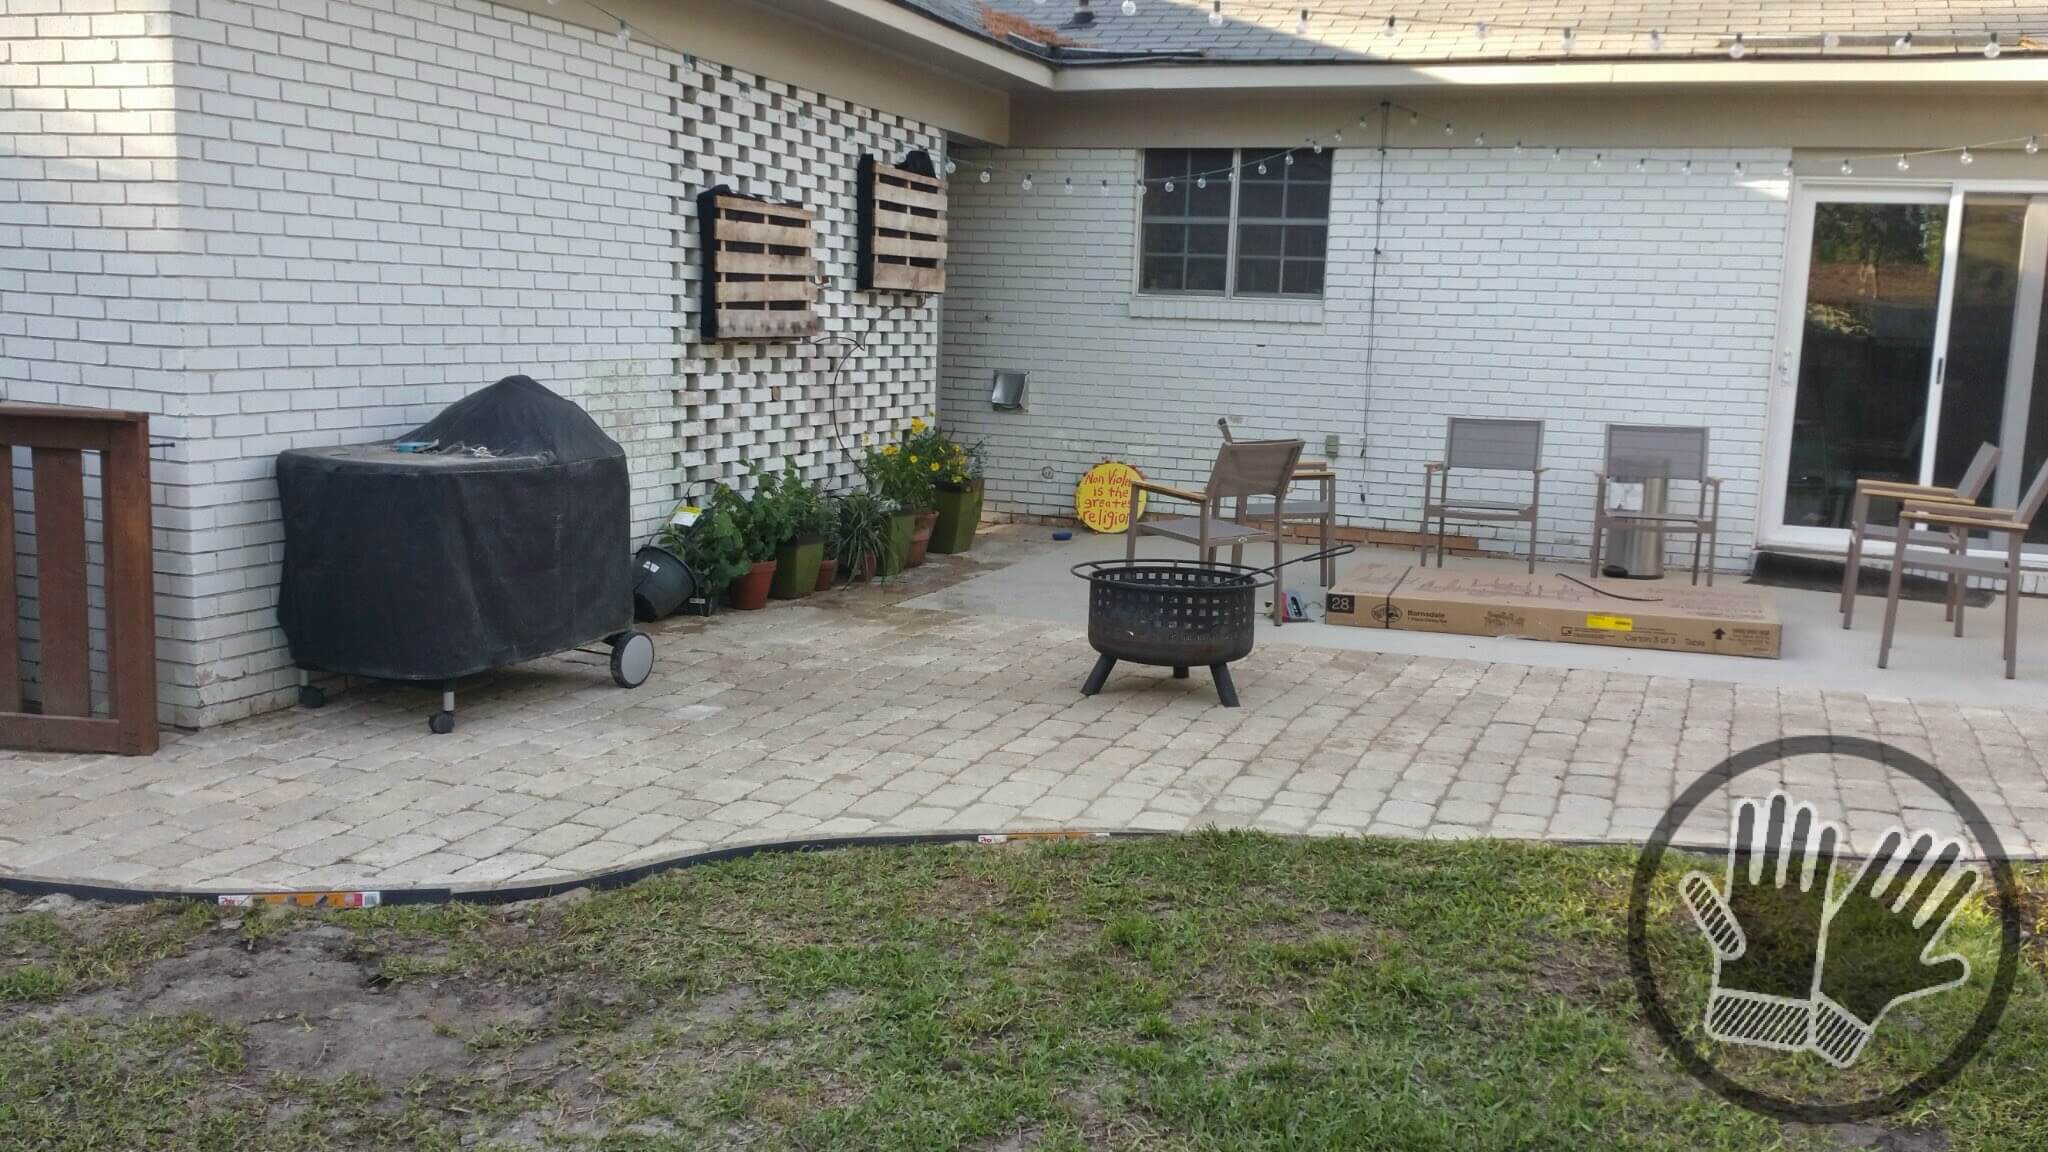 Hardscaping  Chatham Property Maintenance. Patio Pallet Furniture Instructions. Patio Furniture Sold At Kroger. Patio Furniture Store Novi Mi. Lowes Patio Furniture Hexagon. Patio Rocking Chair Cushions. Cheap Plastic Outdoor Dining Set. Outdoor Furniture Replacement Parts. Macy's Monterey Patio Furniture